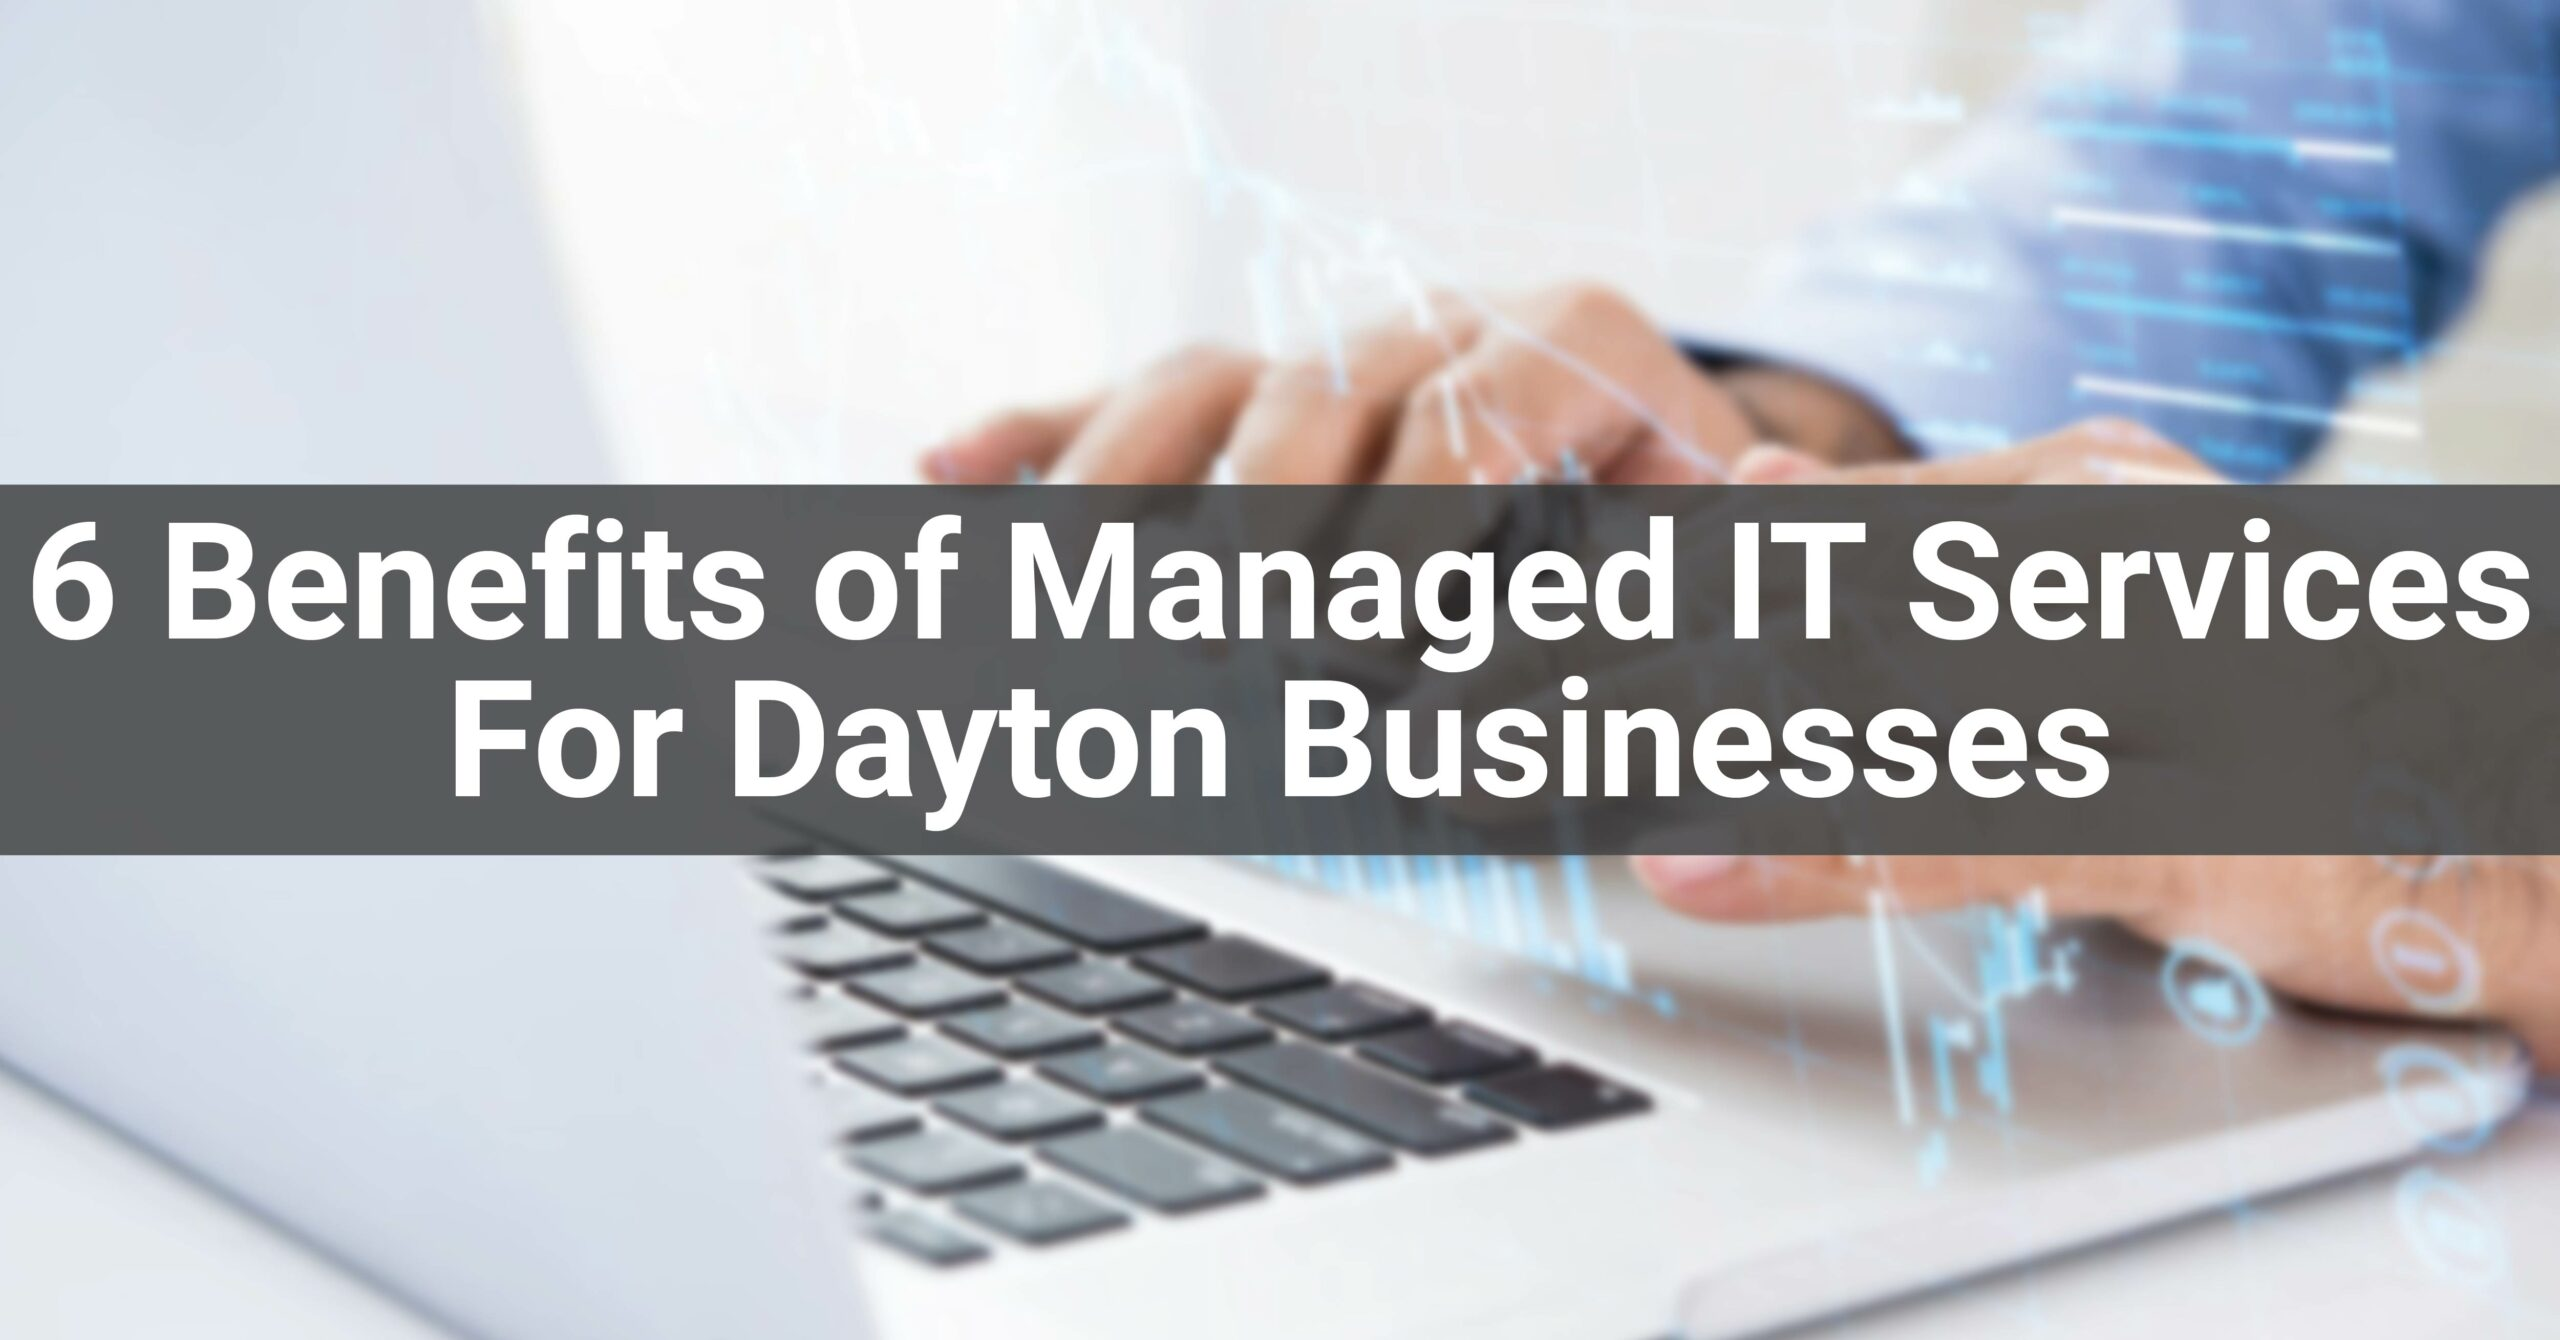 6 Benefits of Managed IT Services For Dayton Businesses